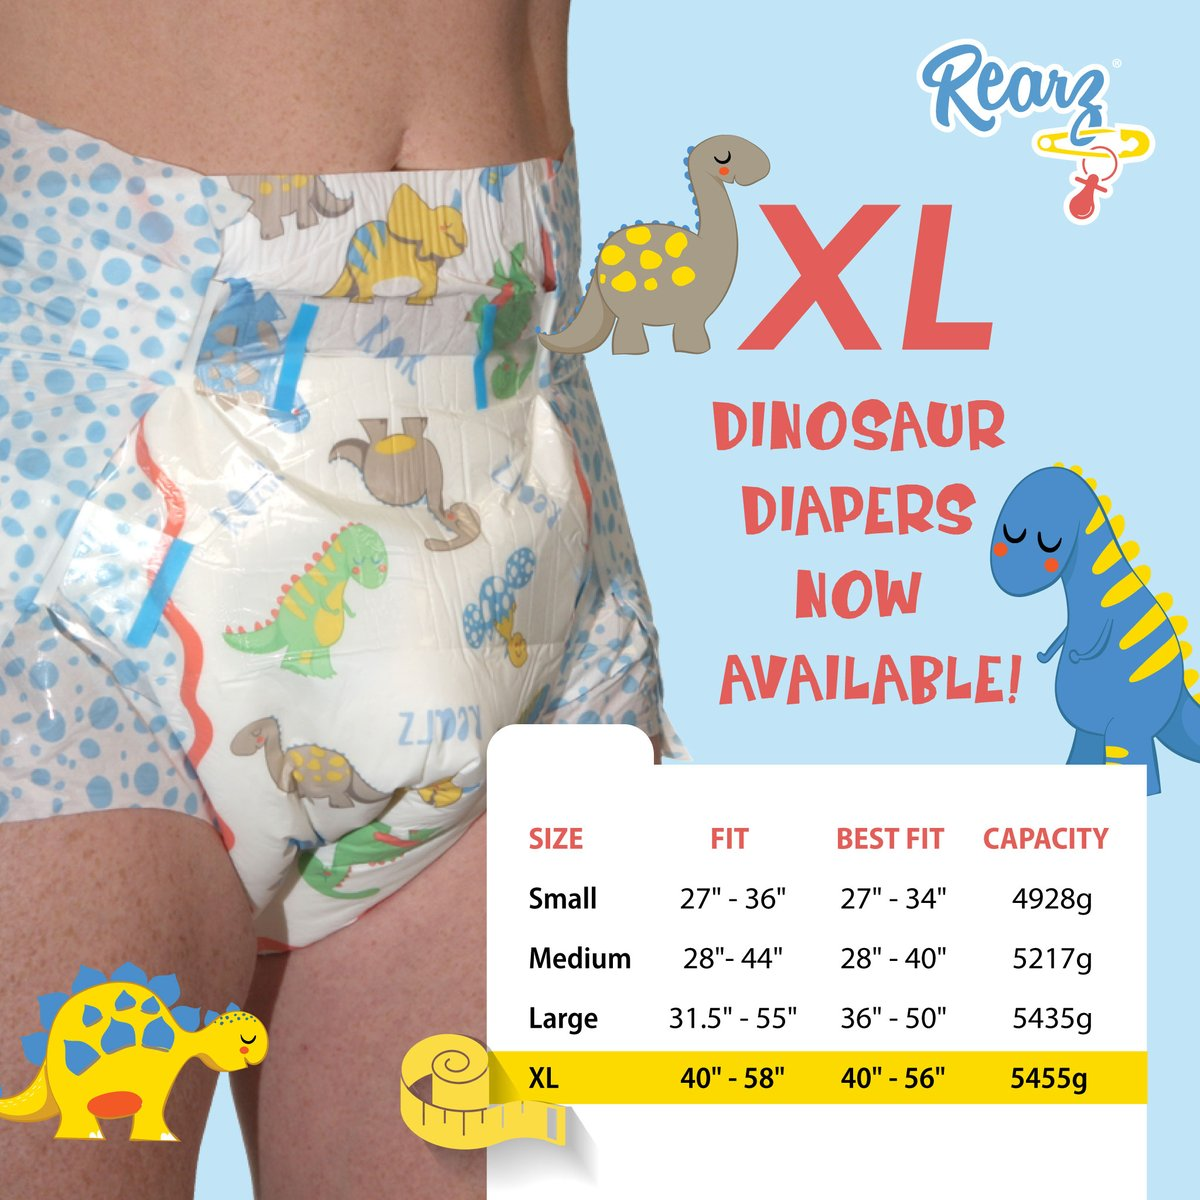 XL Dinosaur Diapers now available!  https://t.co/R5zzDhMVSi  #rearz #rearzinc #rearzdiapers #adultdiapers #adultnappies #diaperfetish #abdl #cglg #cglb #diaperbutt #incontinence #abdldiapers #adultbaby #diaperedbum #ageplay #littlespace #diaperlover #thickdiapers #abdlcommunity https://t.co/nnJp9dXDB4